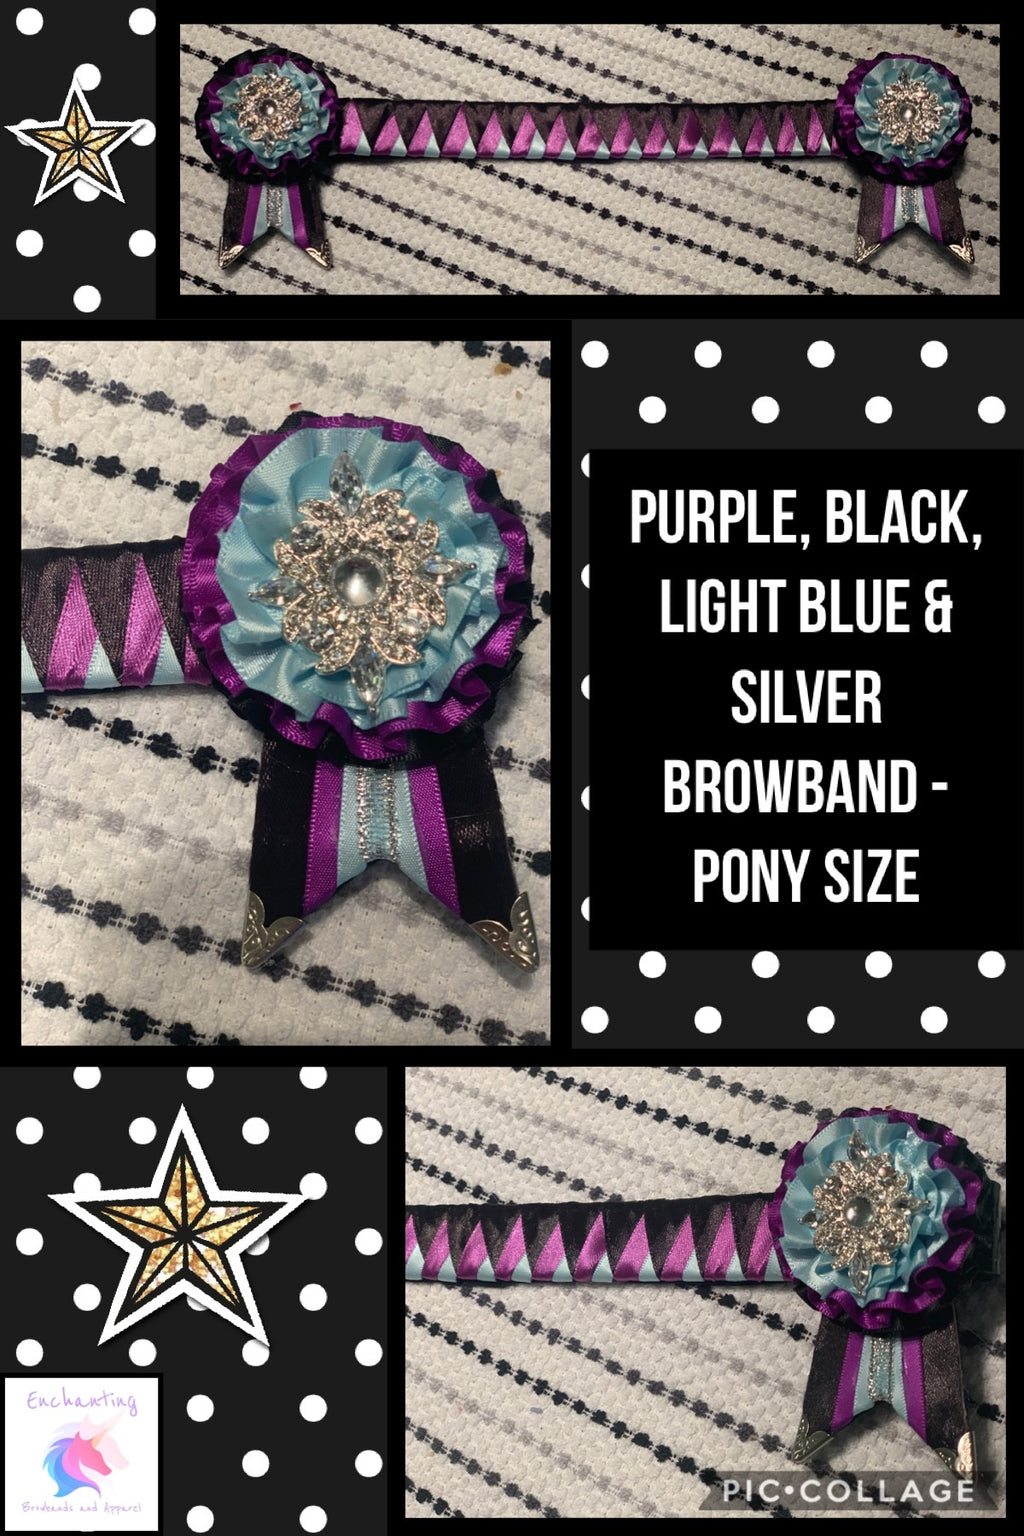 Purple, black & light blue shark tooth browband